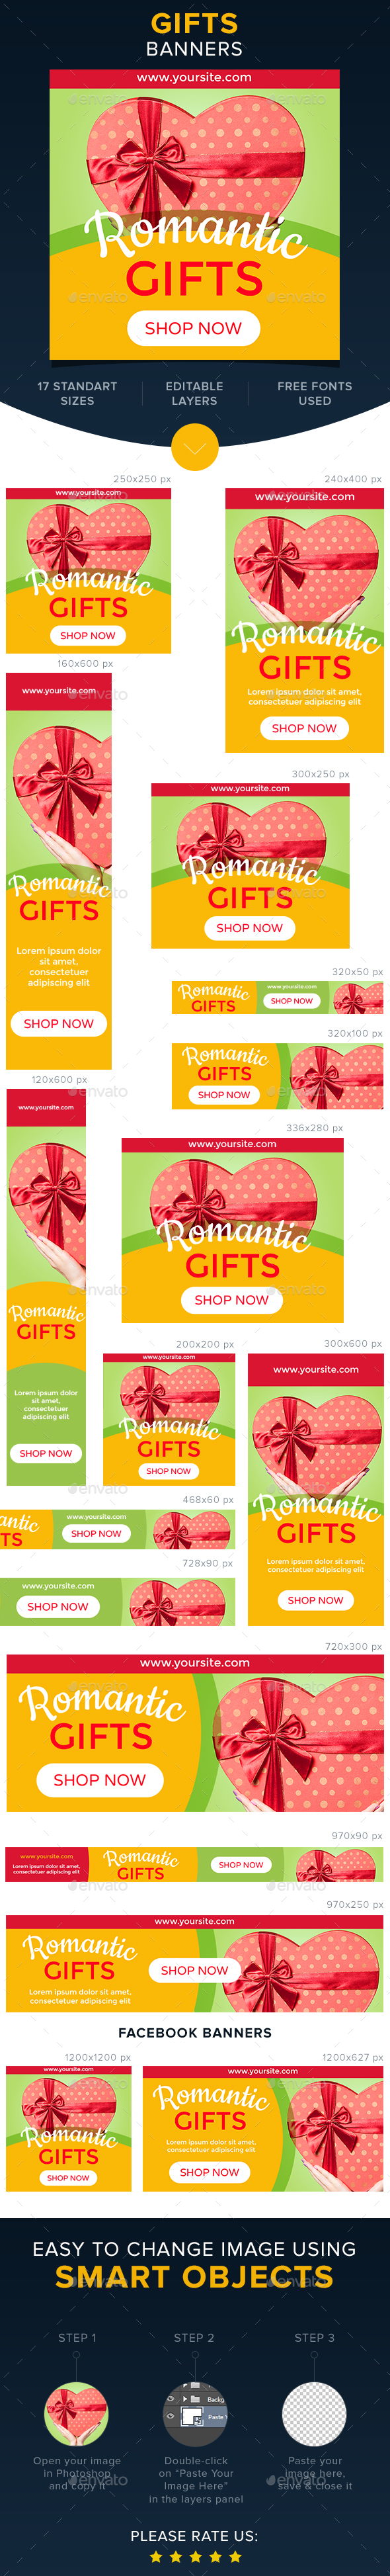 Gifts Banners - Banners & Ads Web Elements